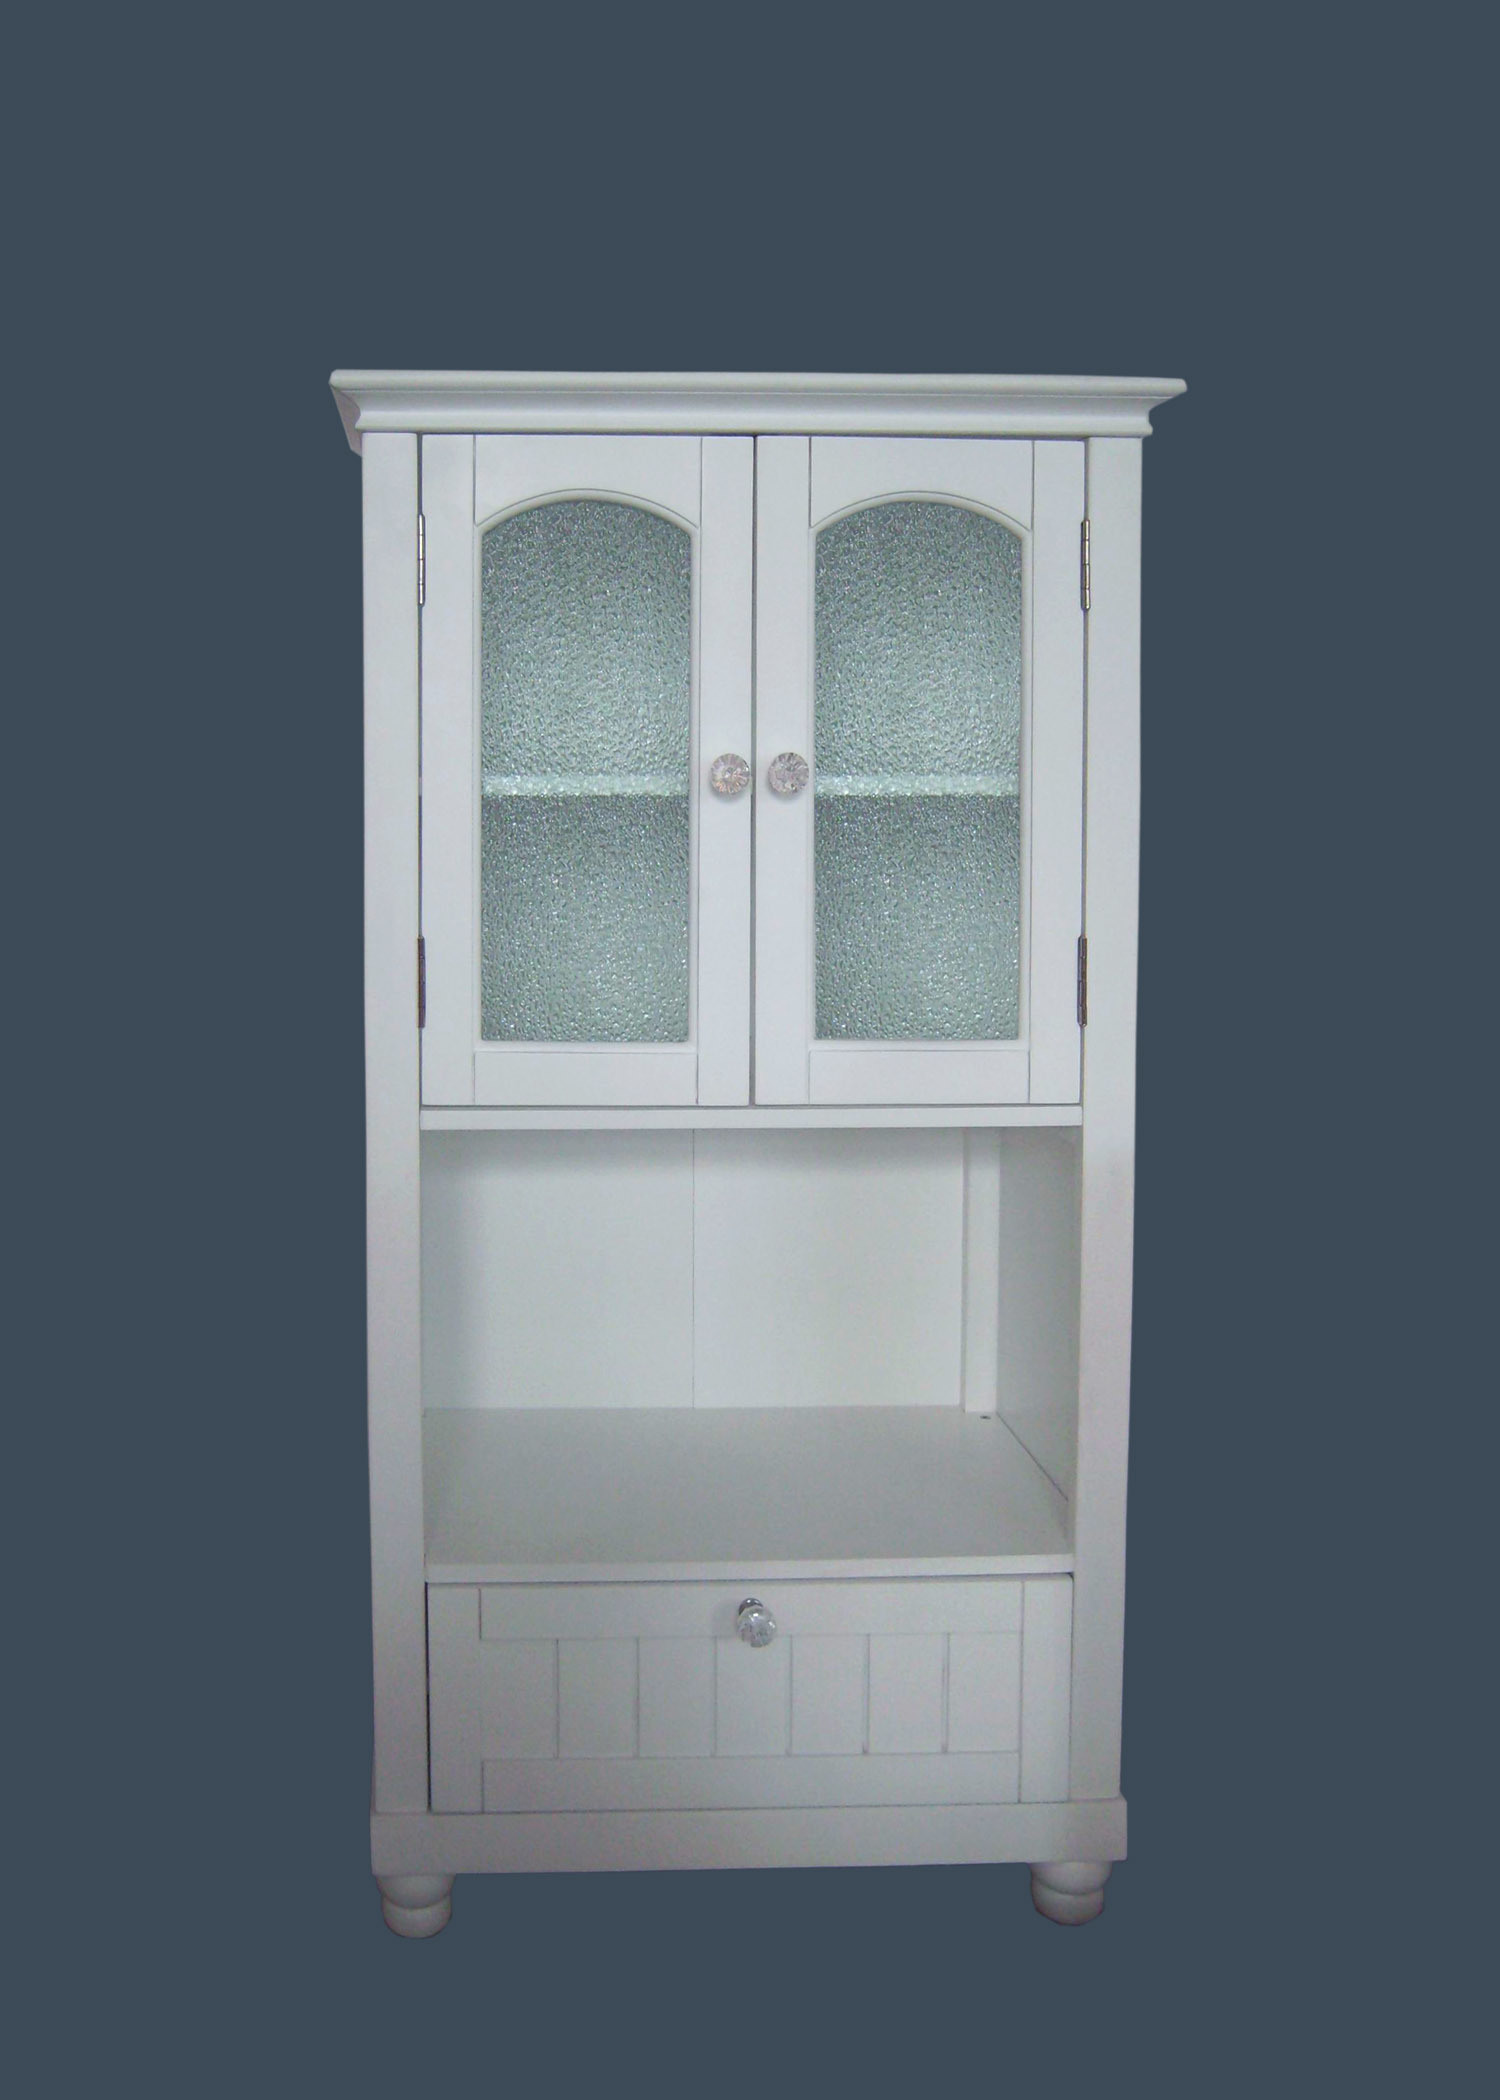 Glass Cabinet Doors : Bathroom cabinet door grasscloth wallpaper